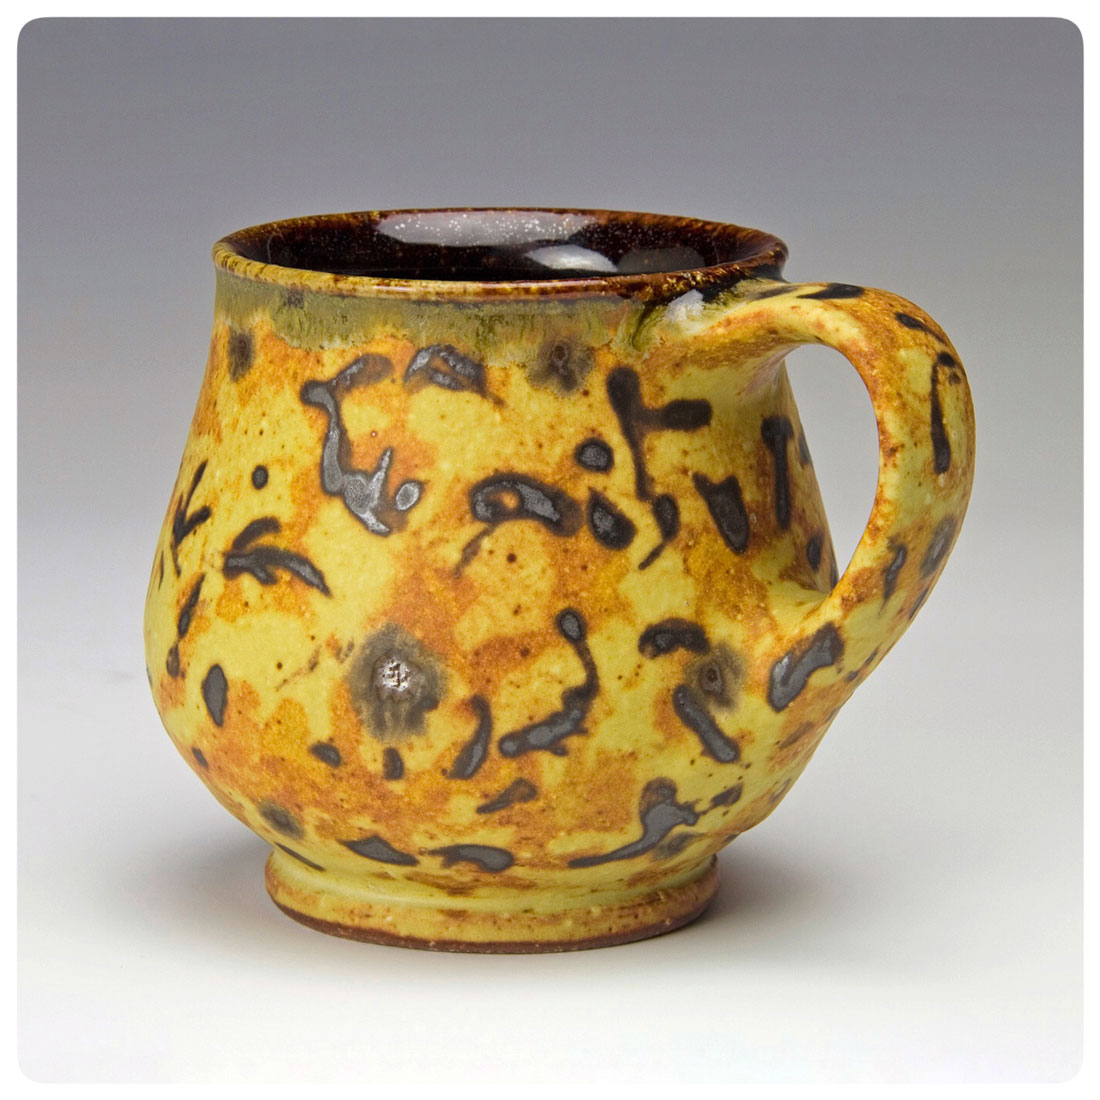 Studio-Pottery-Mug-with-decoration-made-by-Bruce-Gholson.jpg